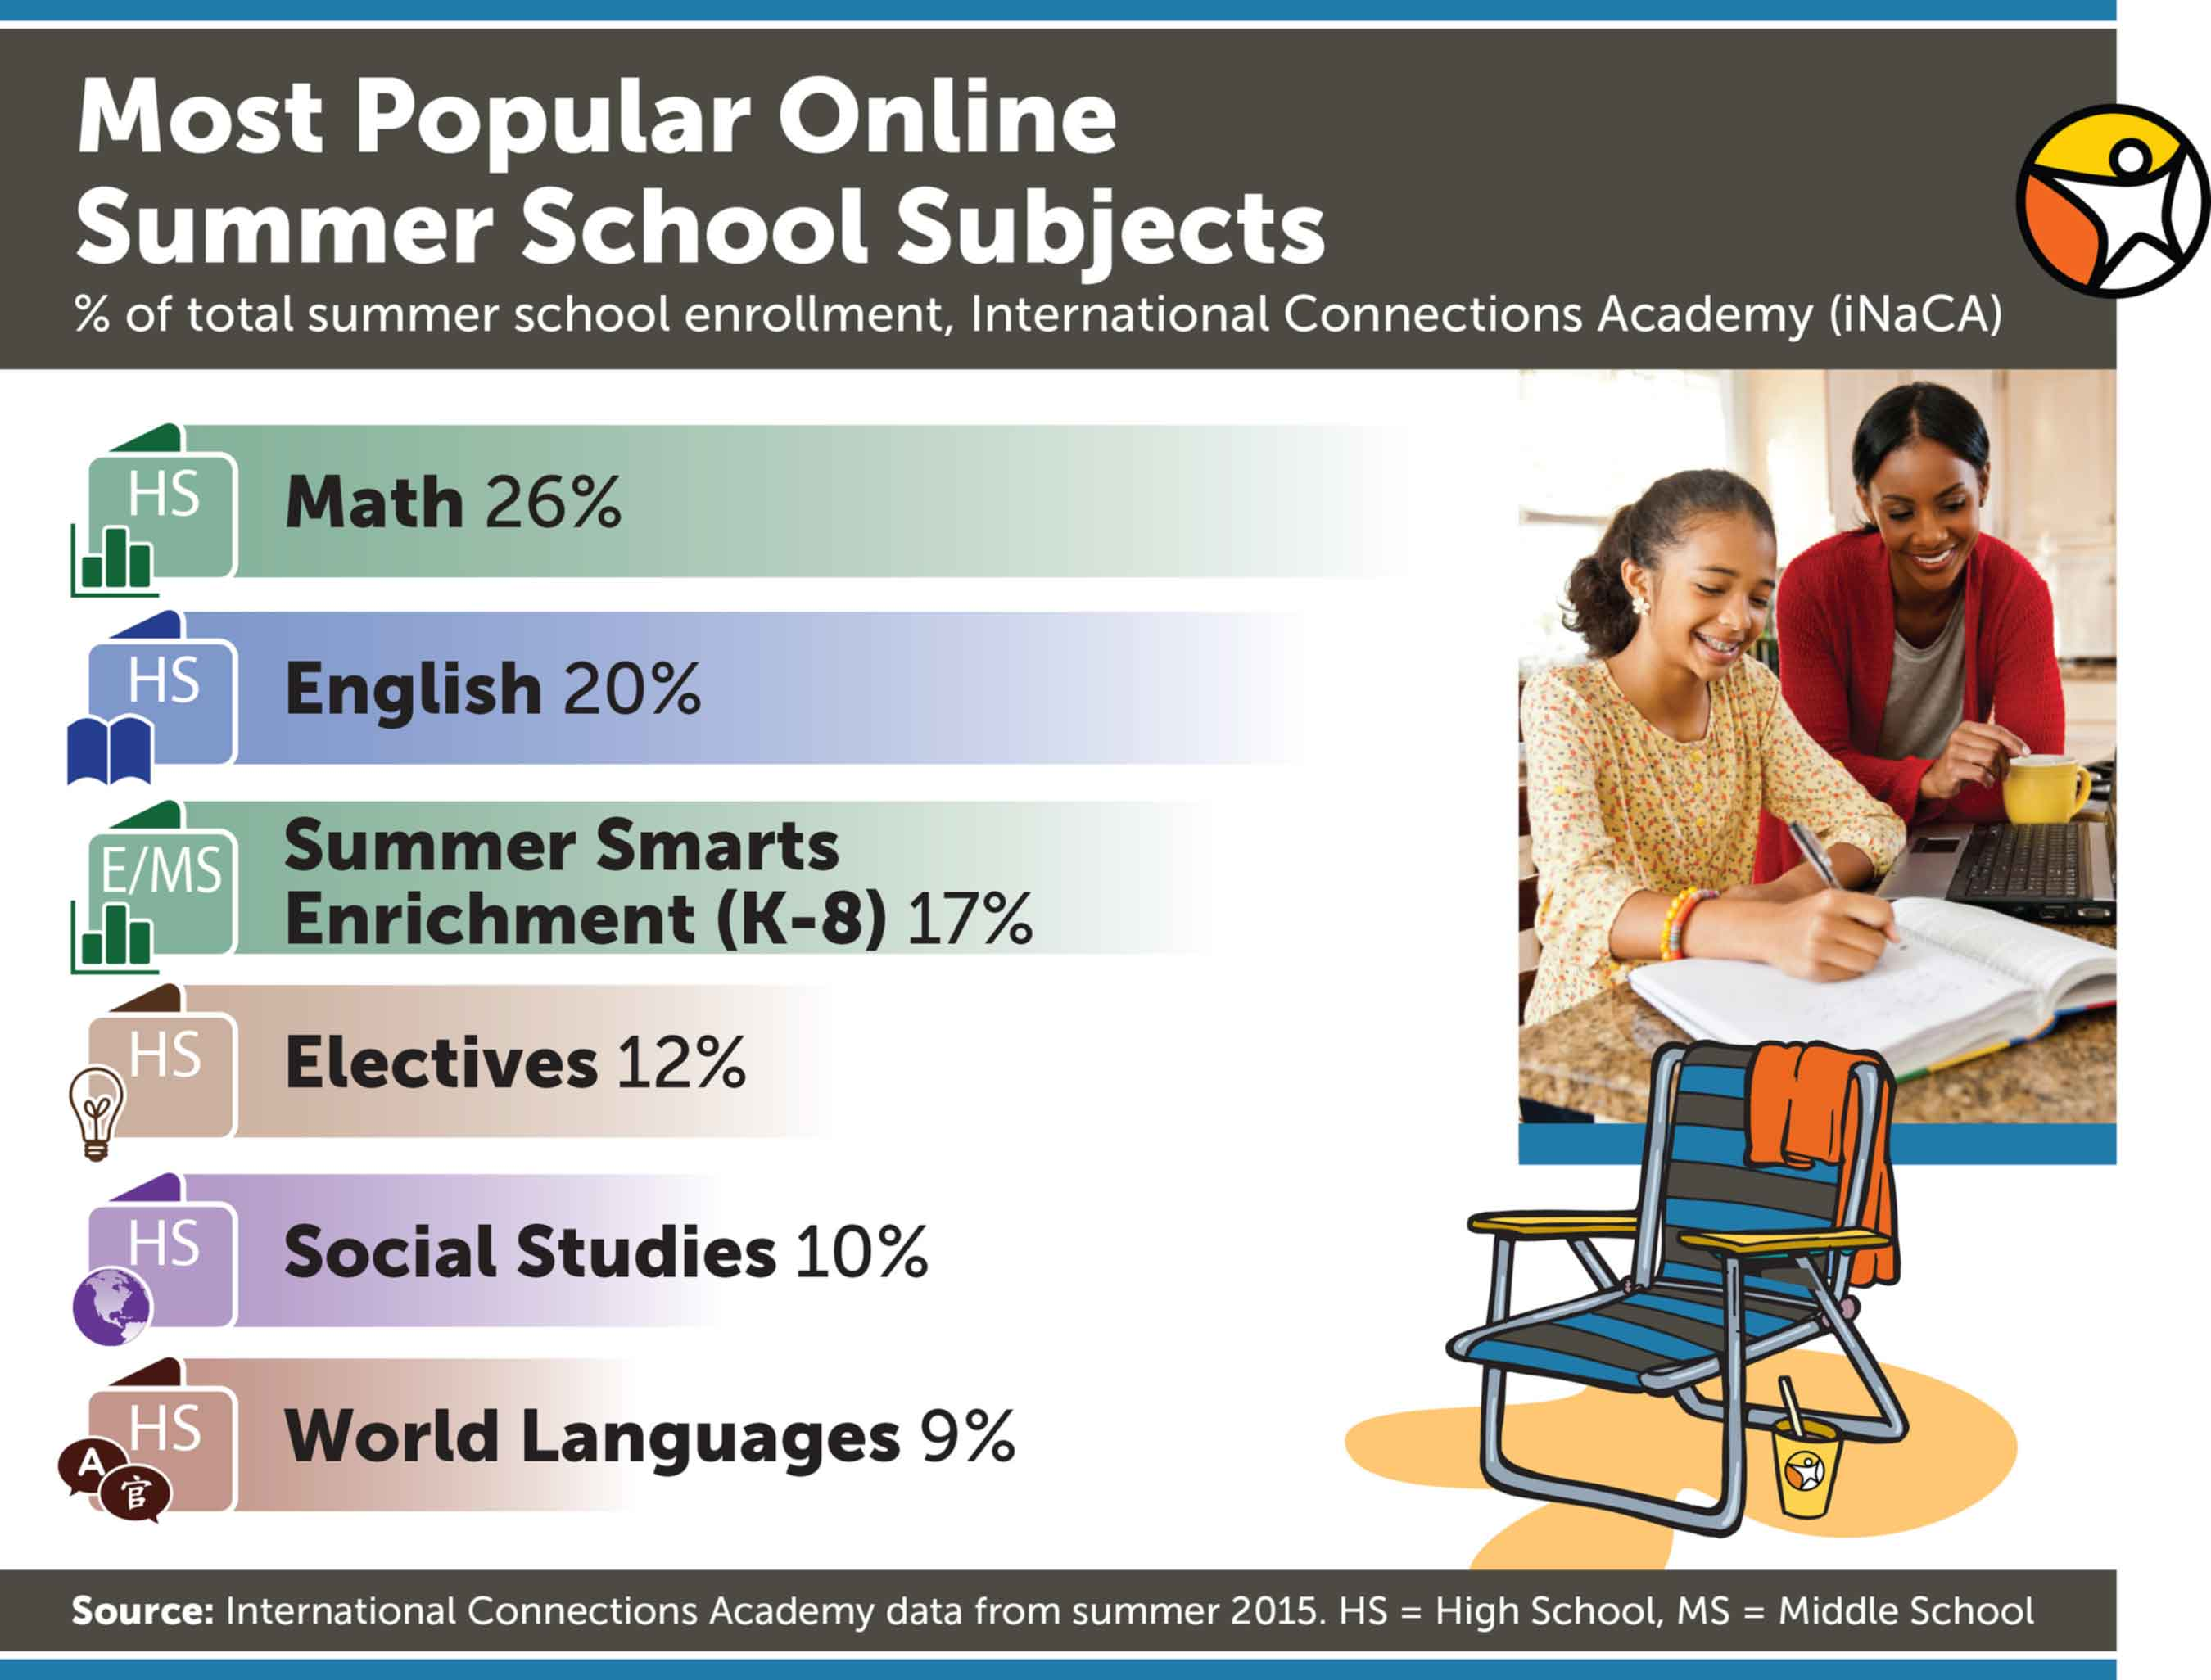 Most Popular Online Summer School Subjects